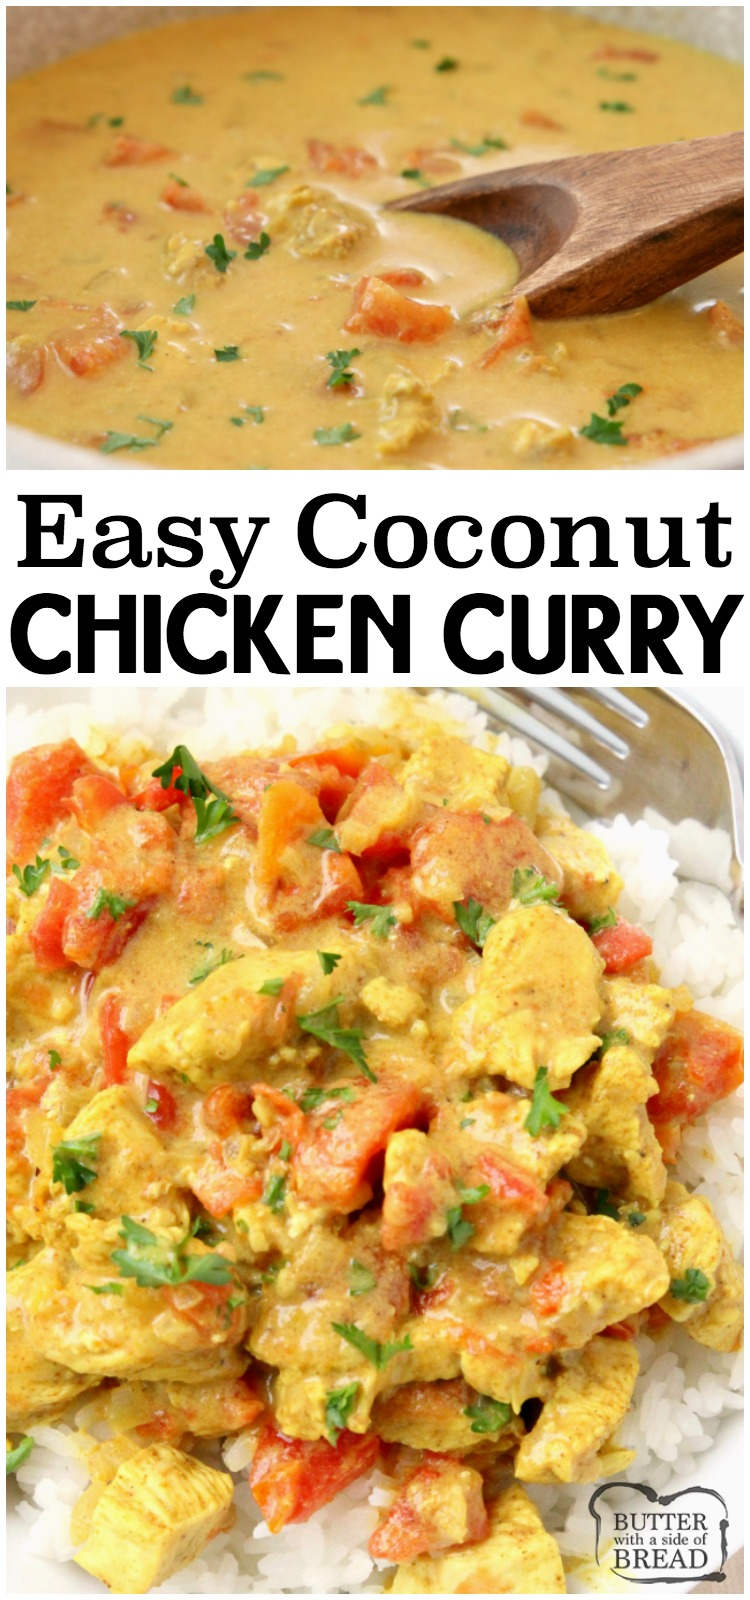 Coconut Chicken Curry recipe perfect for a busy weeknight meal! Simple, flavorful and healthy 20-minute chicken dinner for anyone who loves a mild chicken curry. Our Coconut Curry Chicken recipe uses diced chicken, tomatoes, coconut milk and just enough curry to add flavor, but not make it too spicy. #chicken #dinner #curry #coconut #chickencurry #food #recipe from BUTTER WITH A SIDE OF BREAD